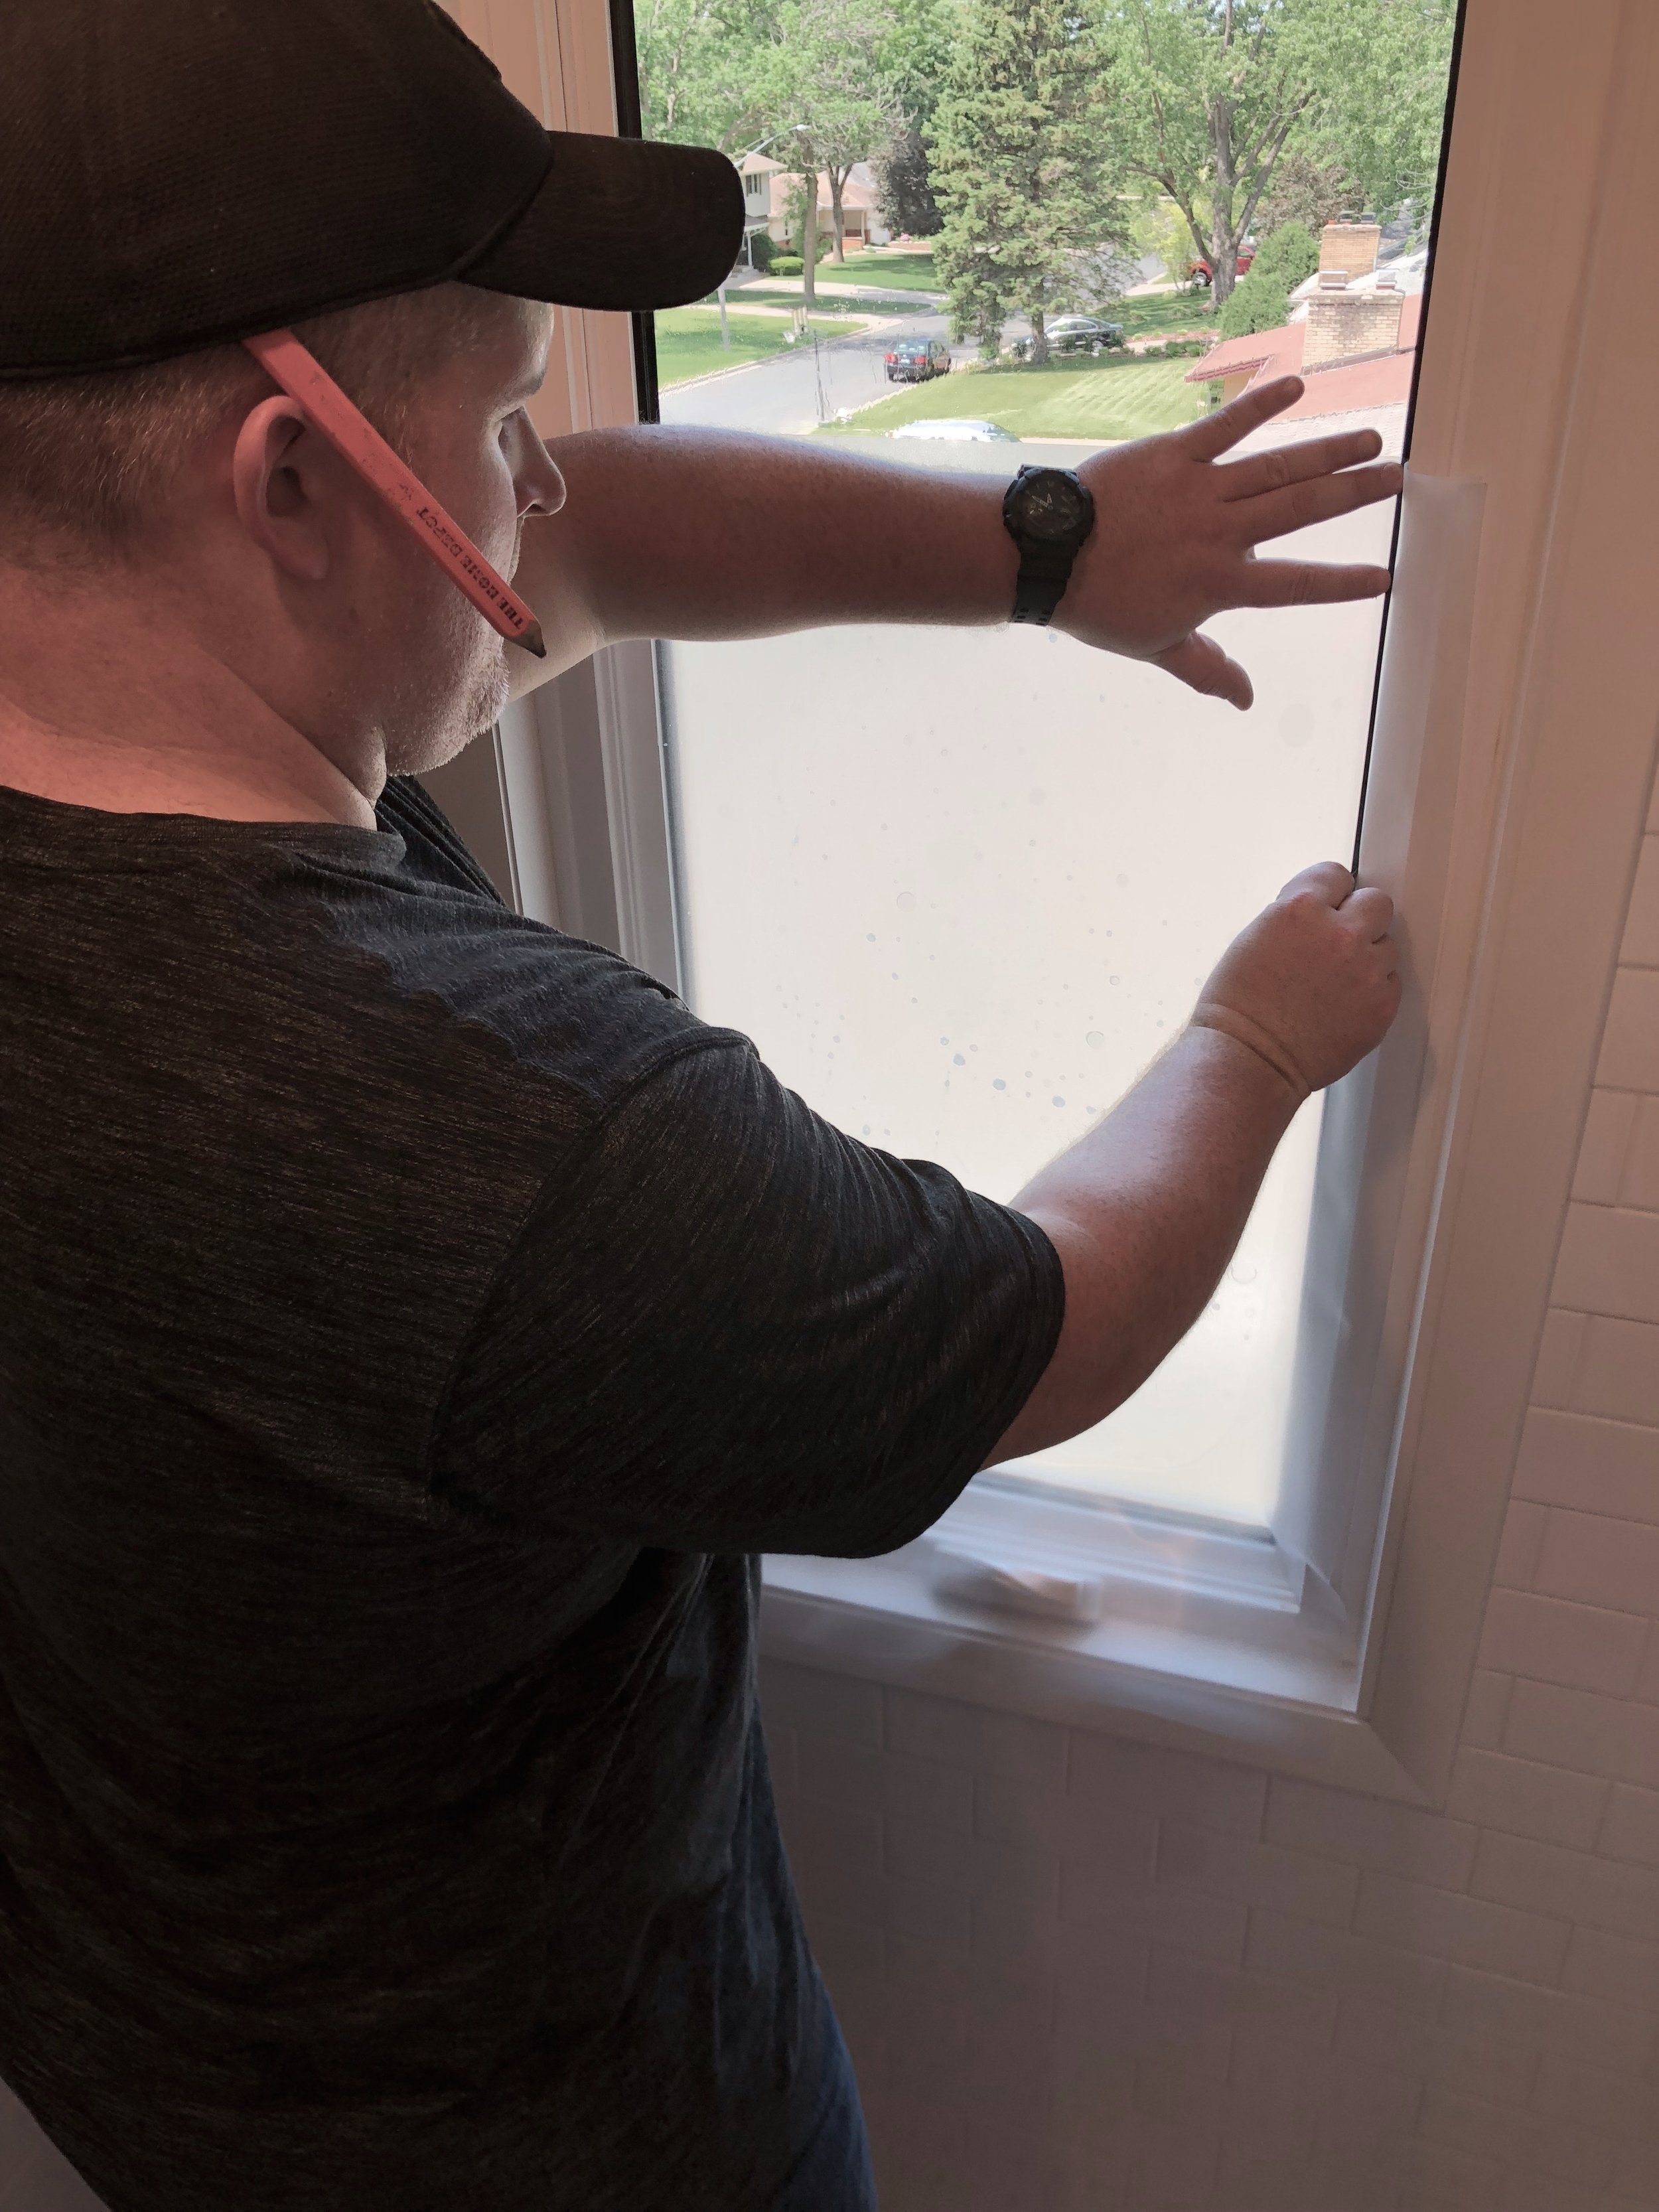 Cut off excess privacy film around edge of window